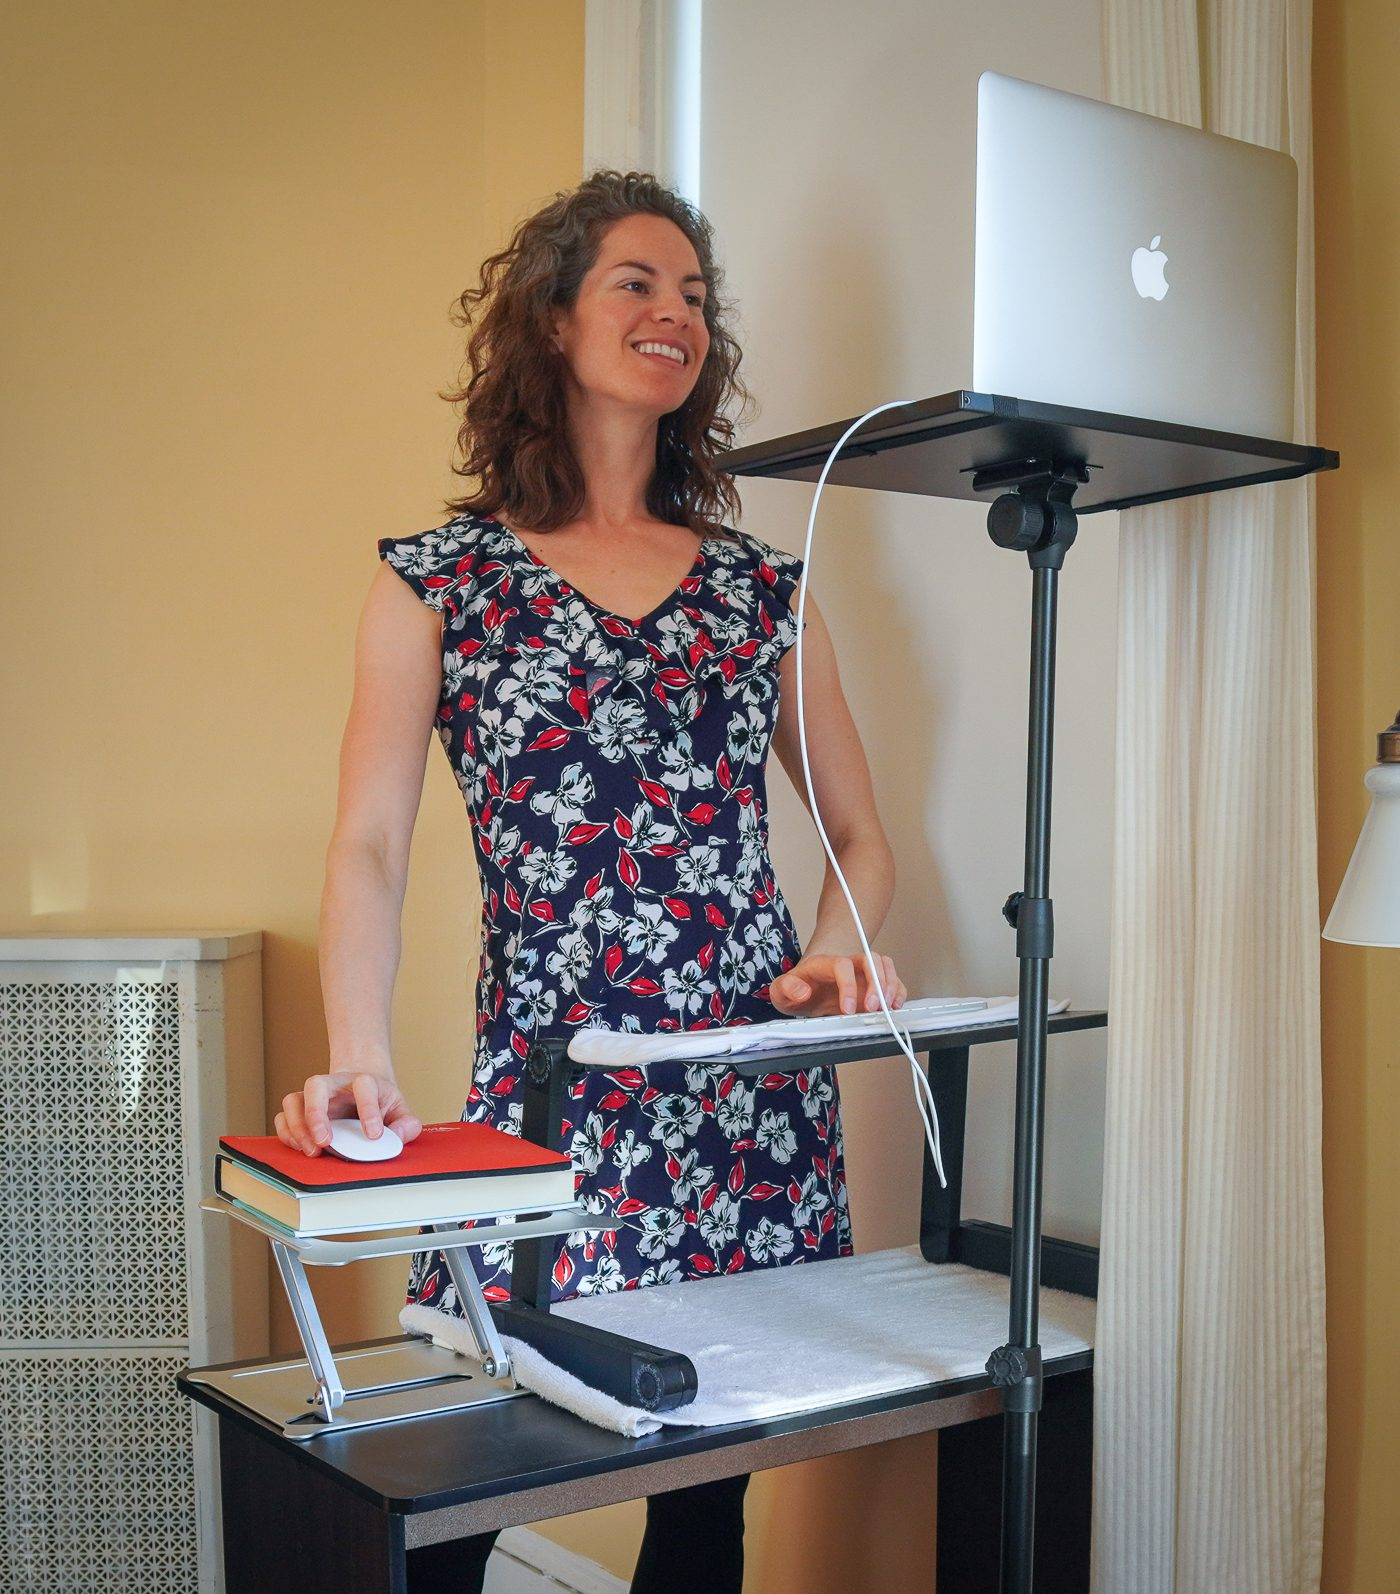 DIY standing desk for a tall person